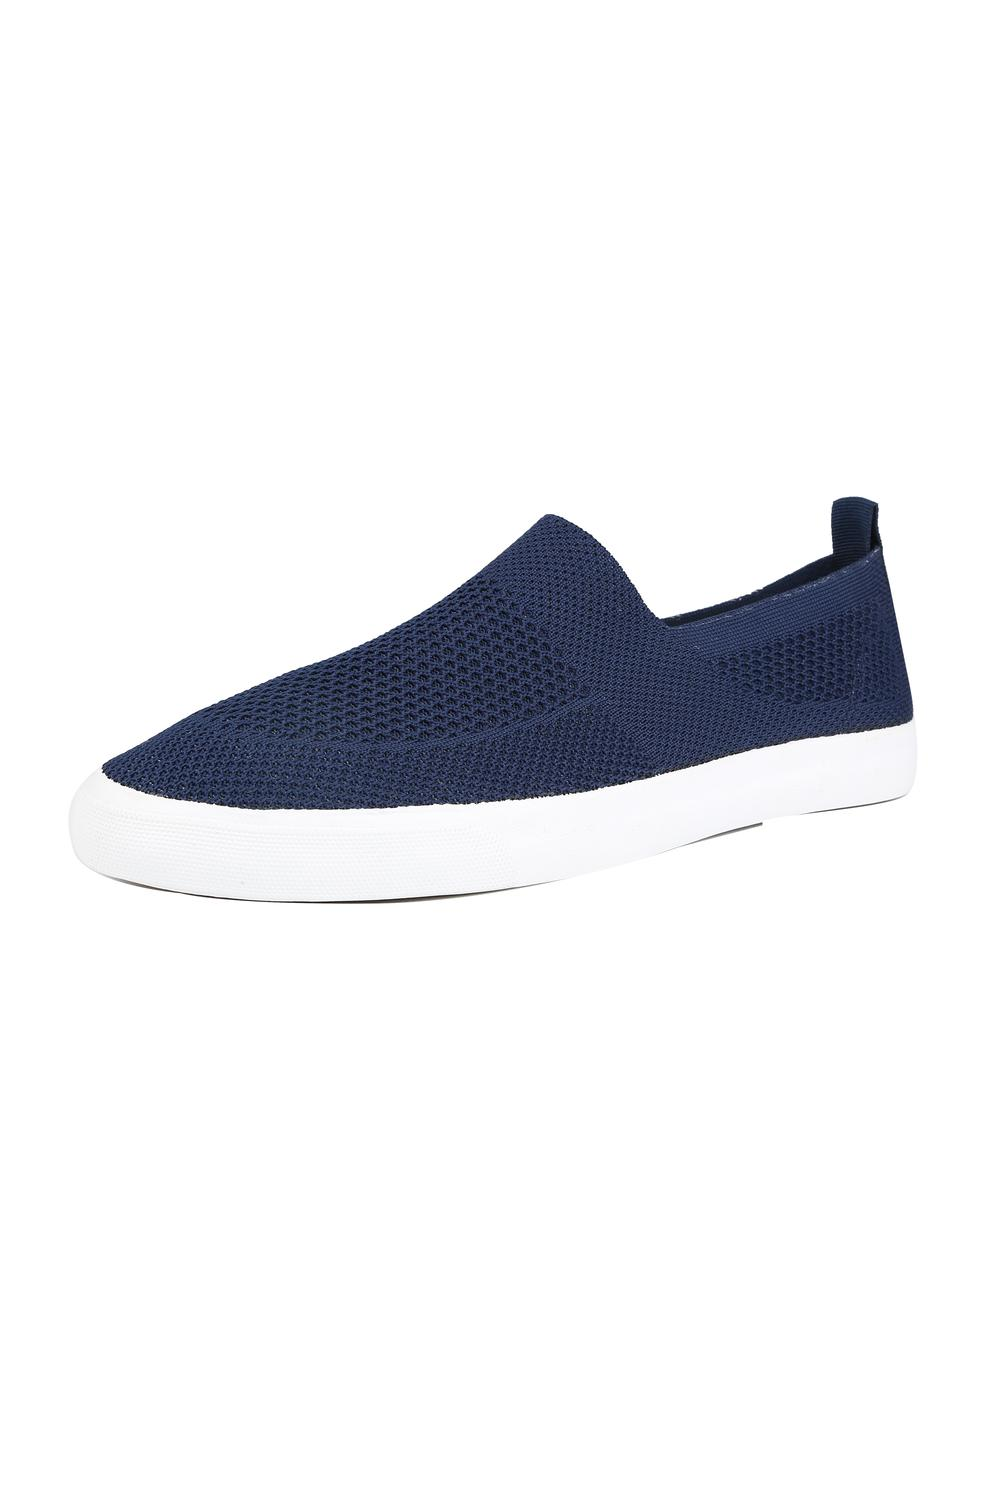 5c963f3496 Solly Sport Footwear, Allen Solly Navy Wimbledon Slip Ons for Men at  Allensolly.com